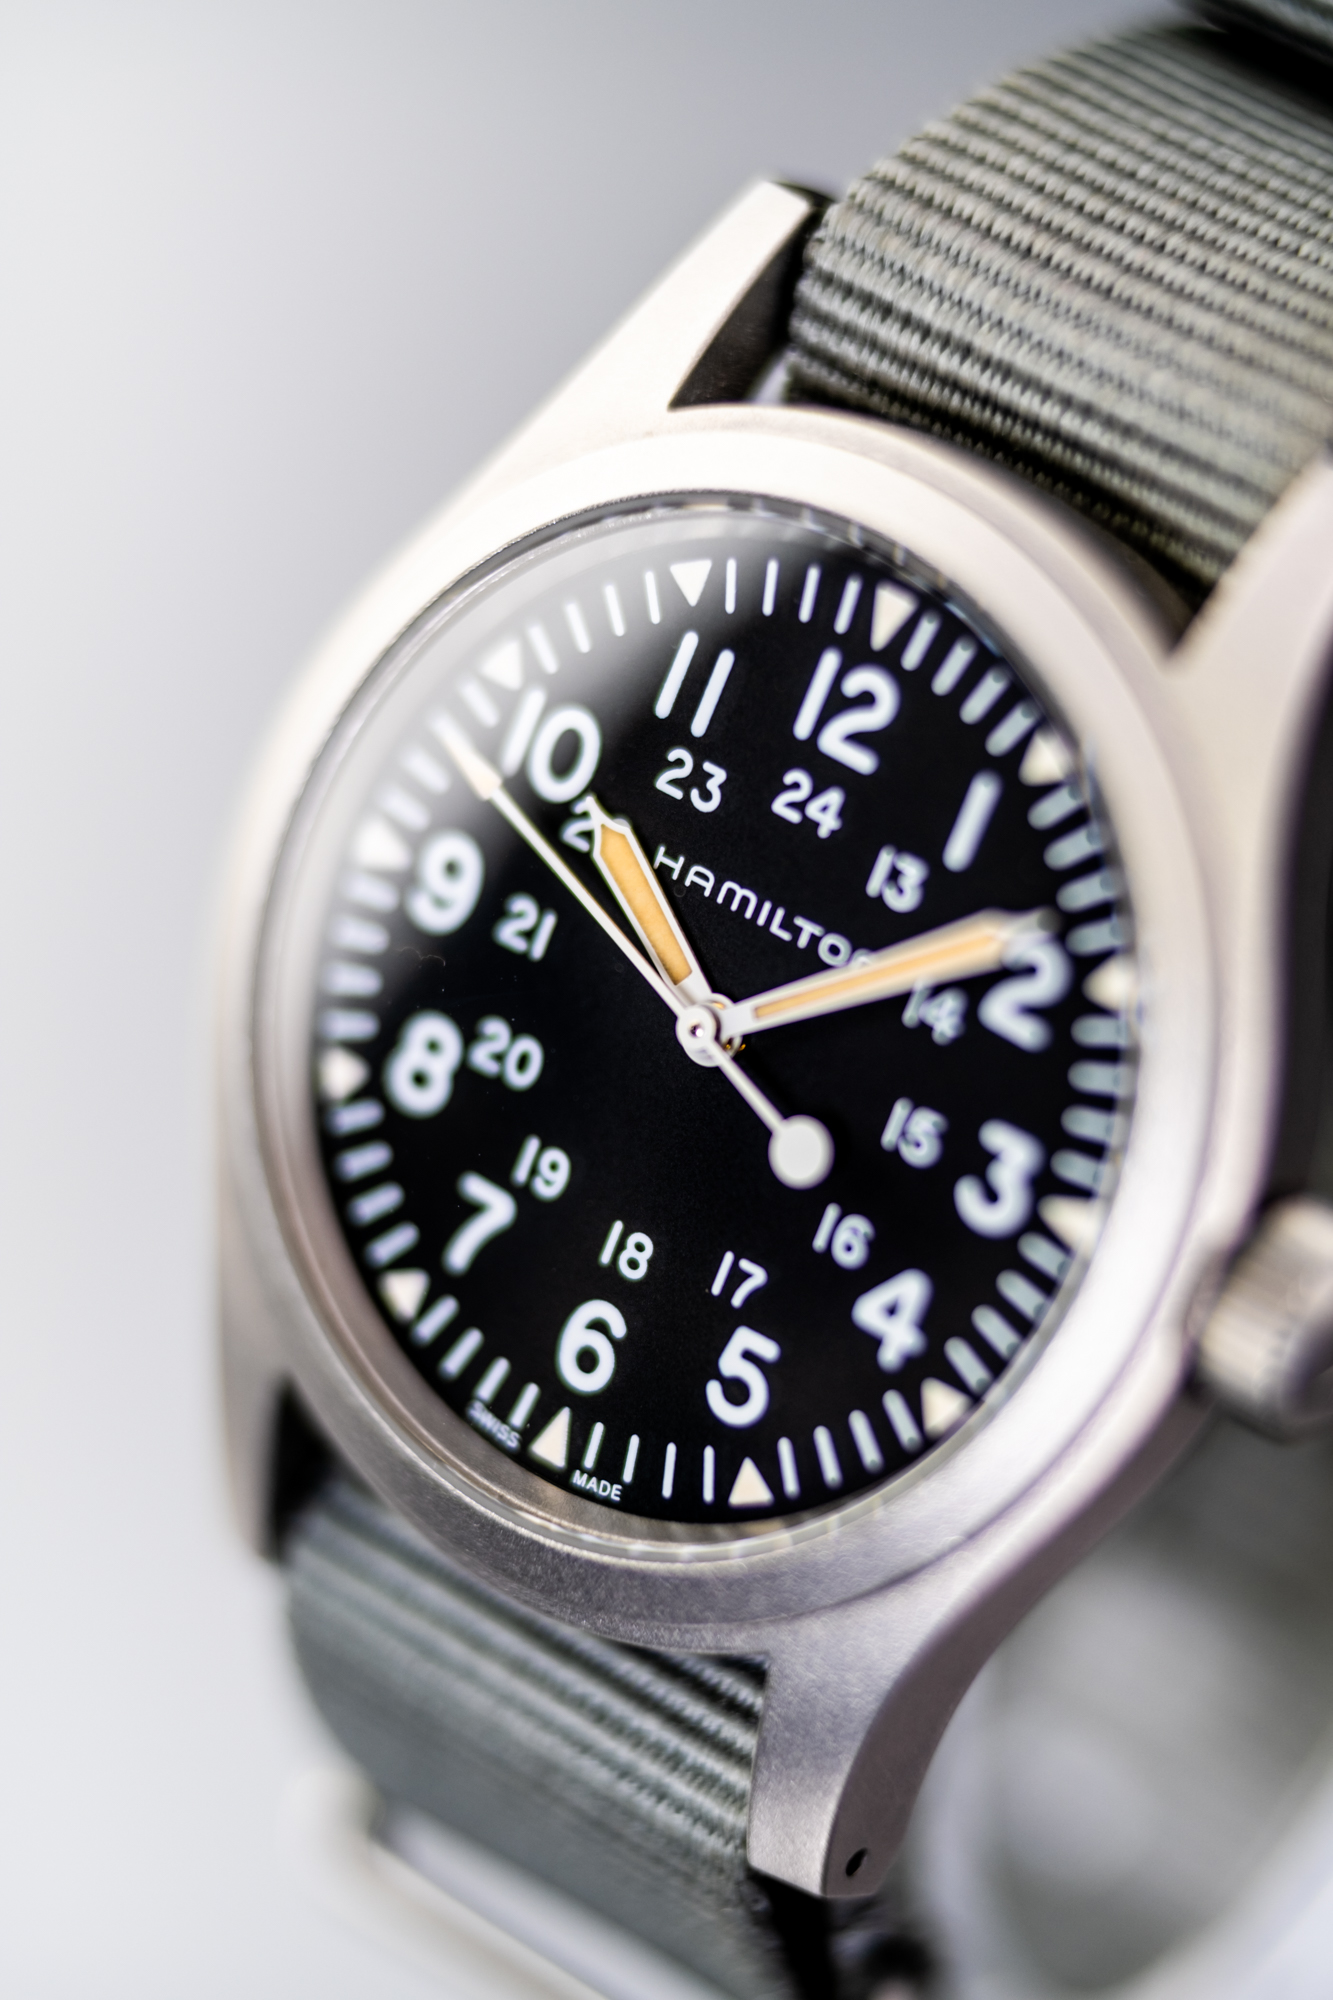 The Hamilton Khaki Field Mechanical H69439931with BluShark NATO Strap shows selective focus and reflections that give shape to its sapphire crystal.